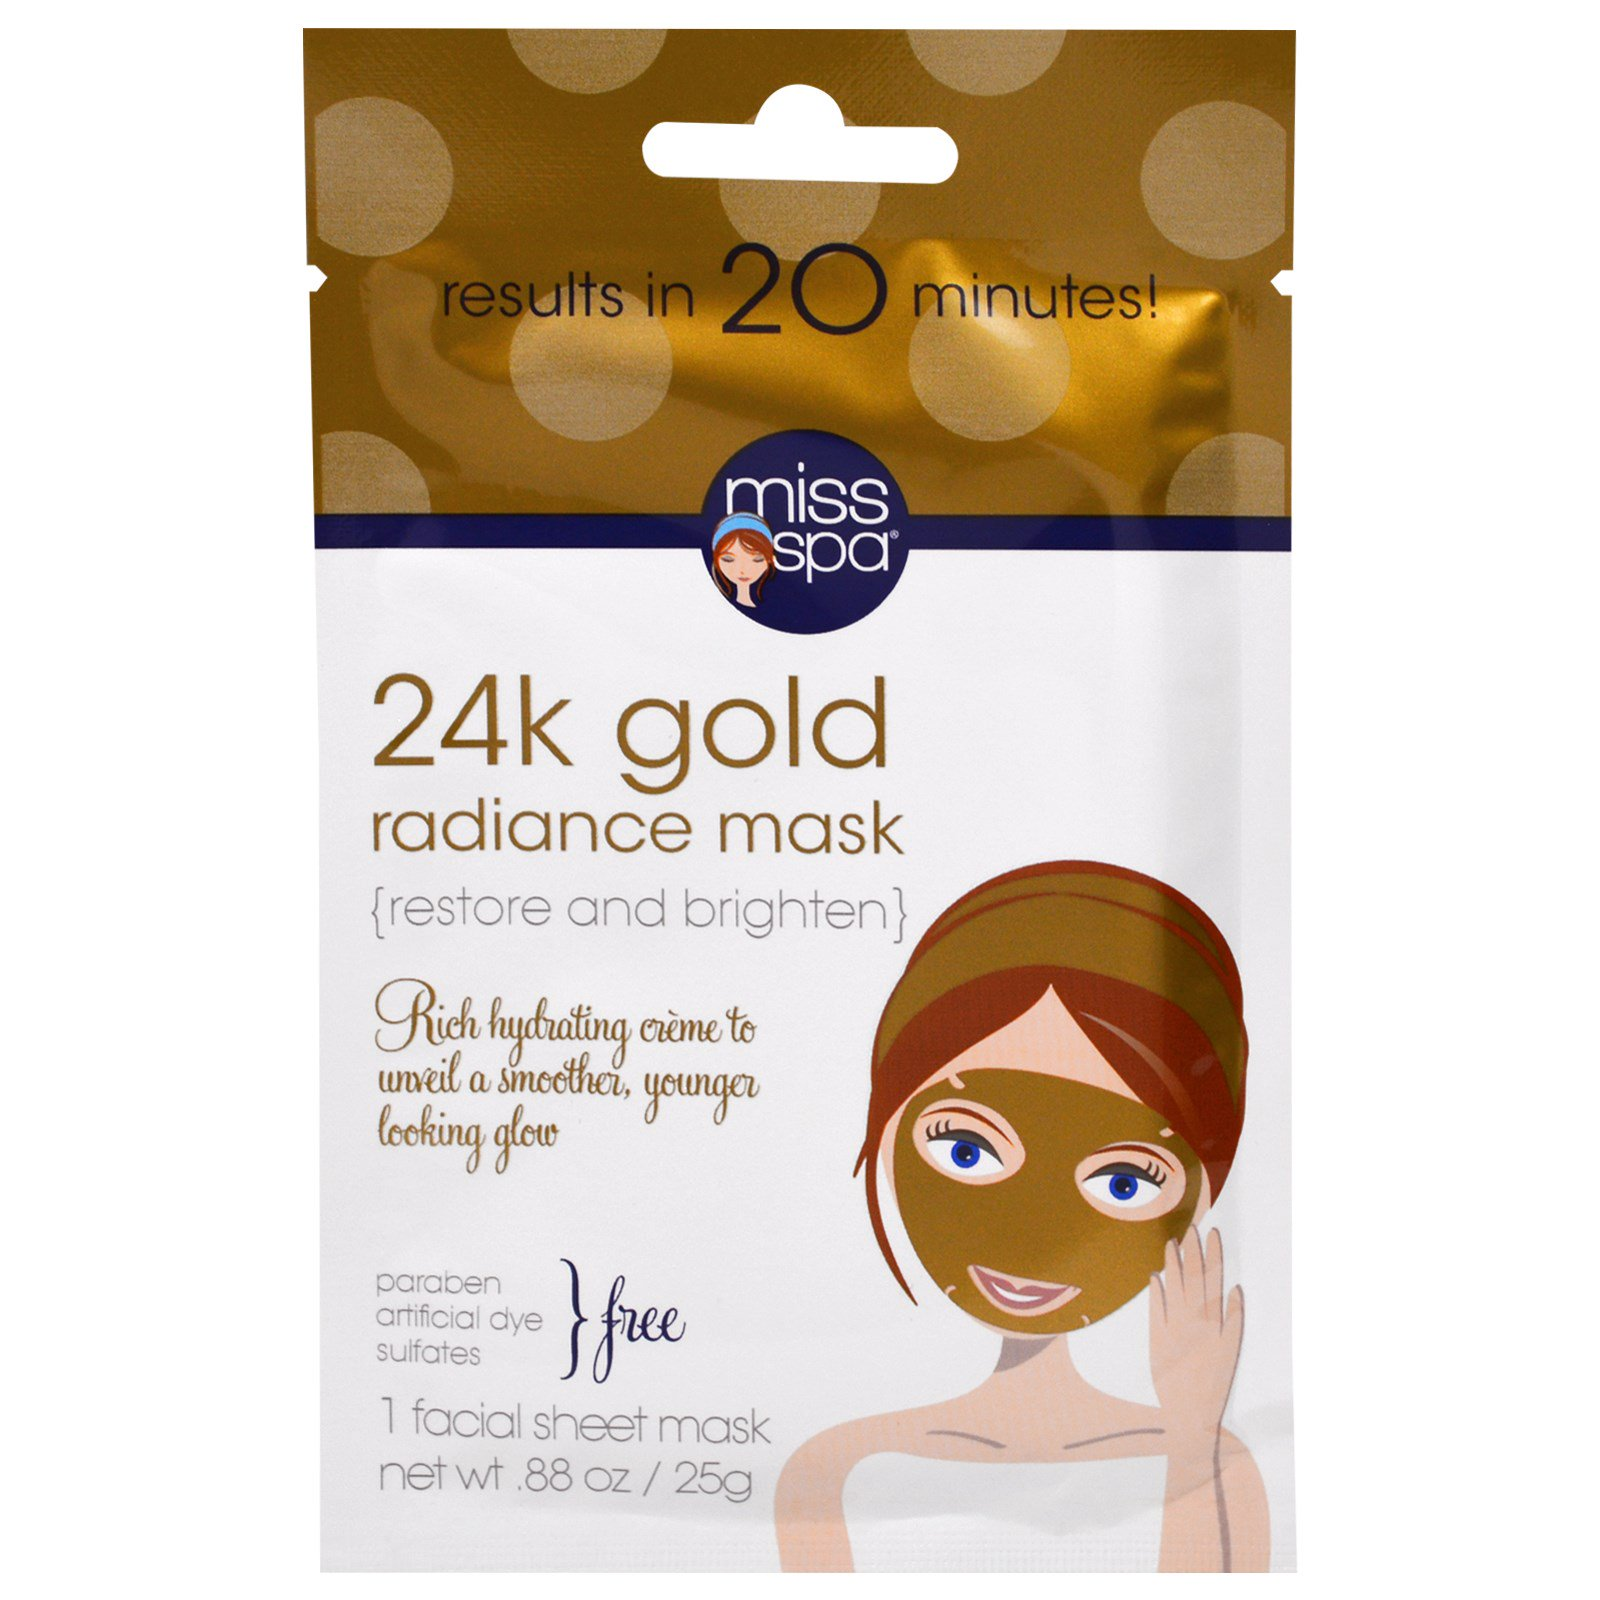 Facial Sheet Mask 24k Gold Radiance - 1 Count by Miss Spa (pack of 4) Garnier SkinActive Miracle Anti-Fatigue Face Moisturizer